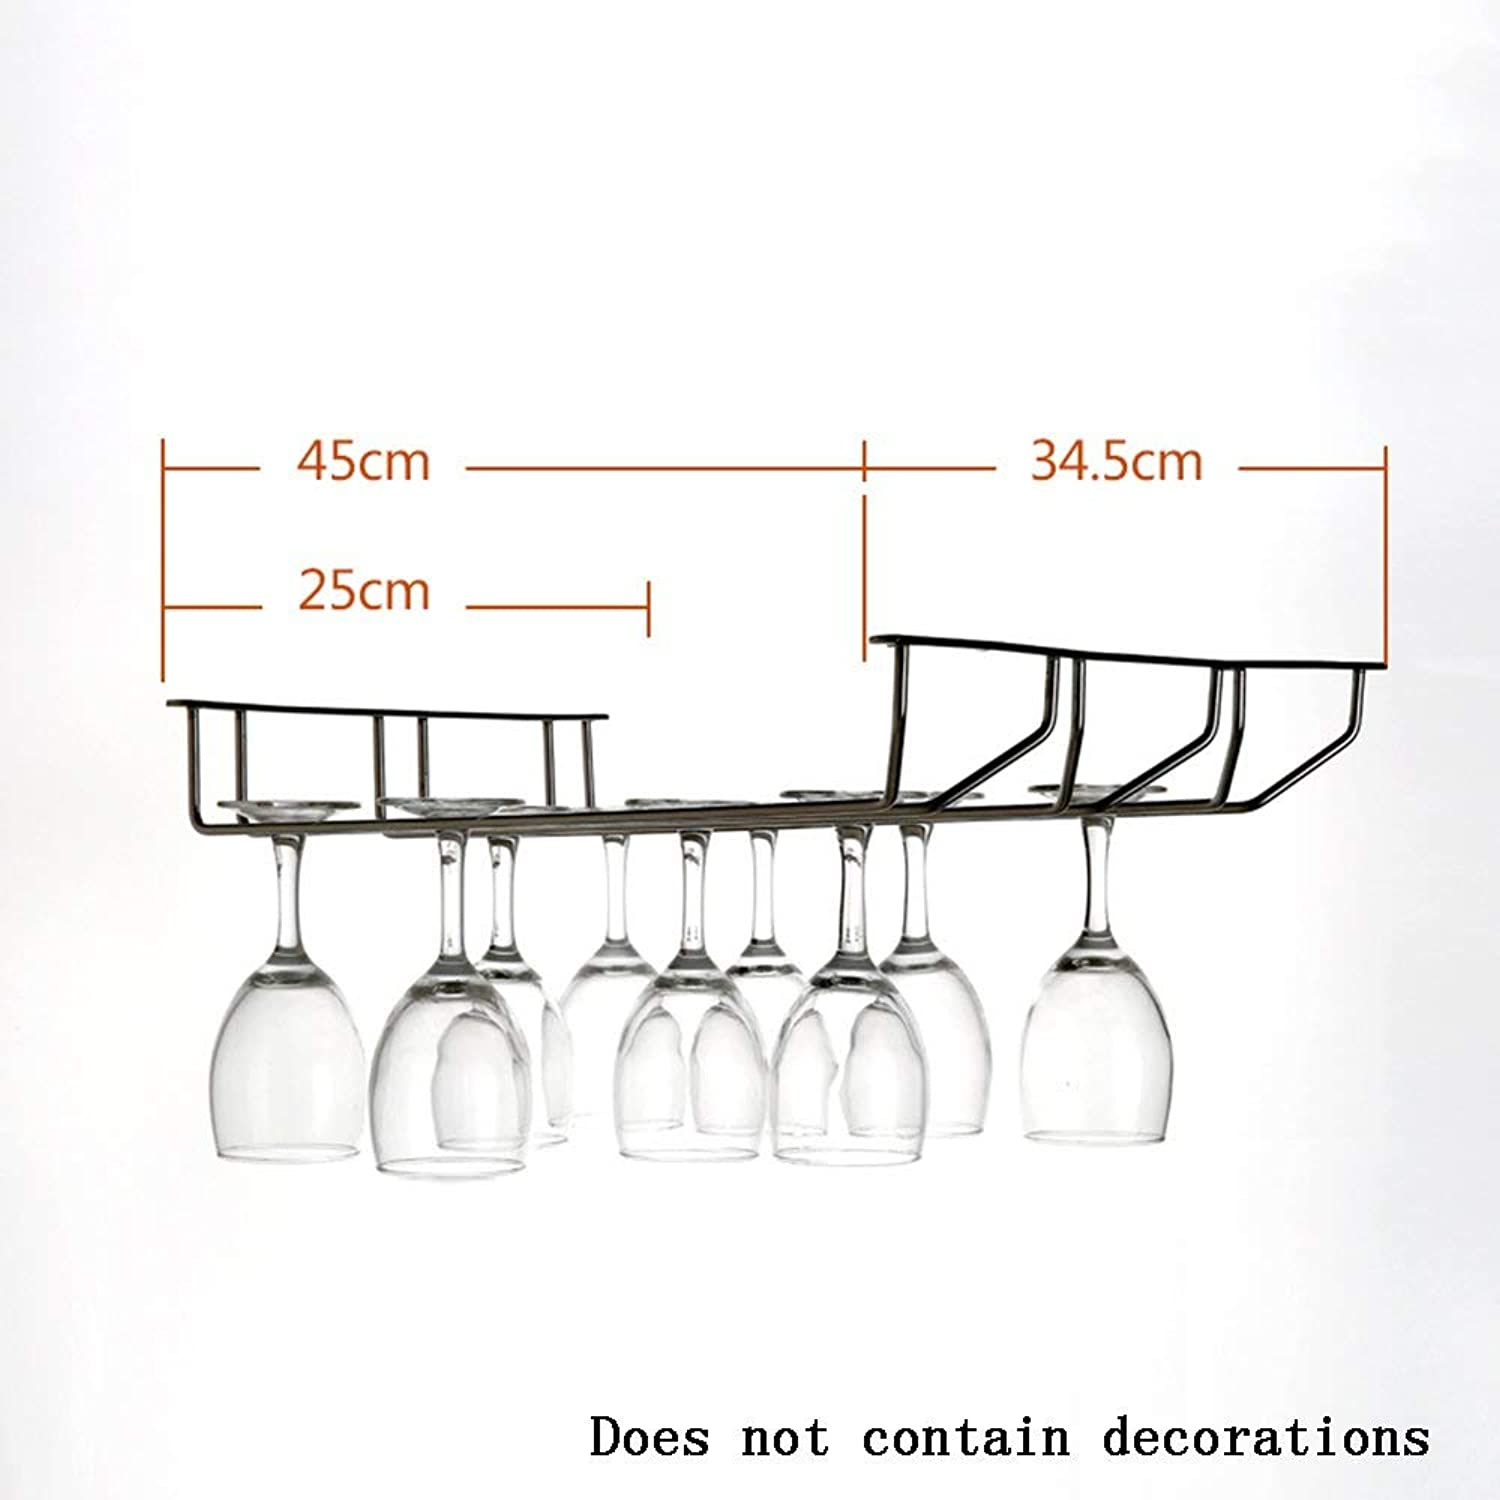 Red Wine Shelf Stainless Steel Material Wine Racks Hanging Wine Cup Holder Goblets Rack,Creative bar Living Room Household Decorations Pendant -Wine Rack (Size   Length 45cm) (Size   Length 45cm)